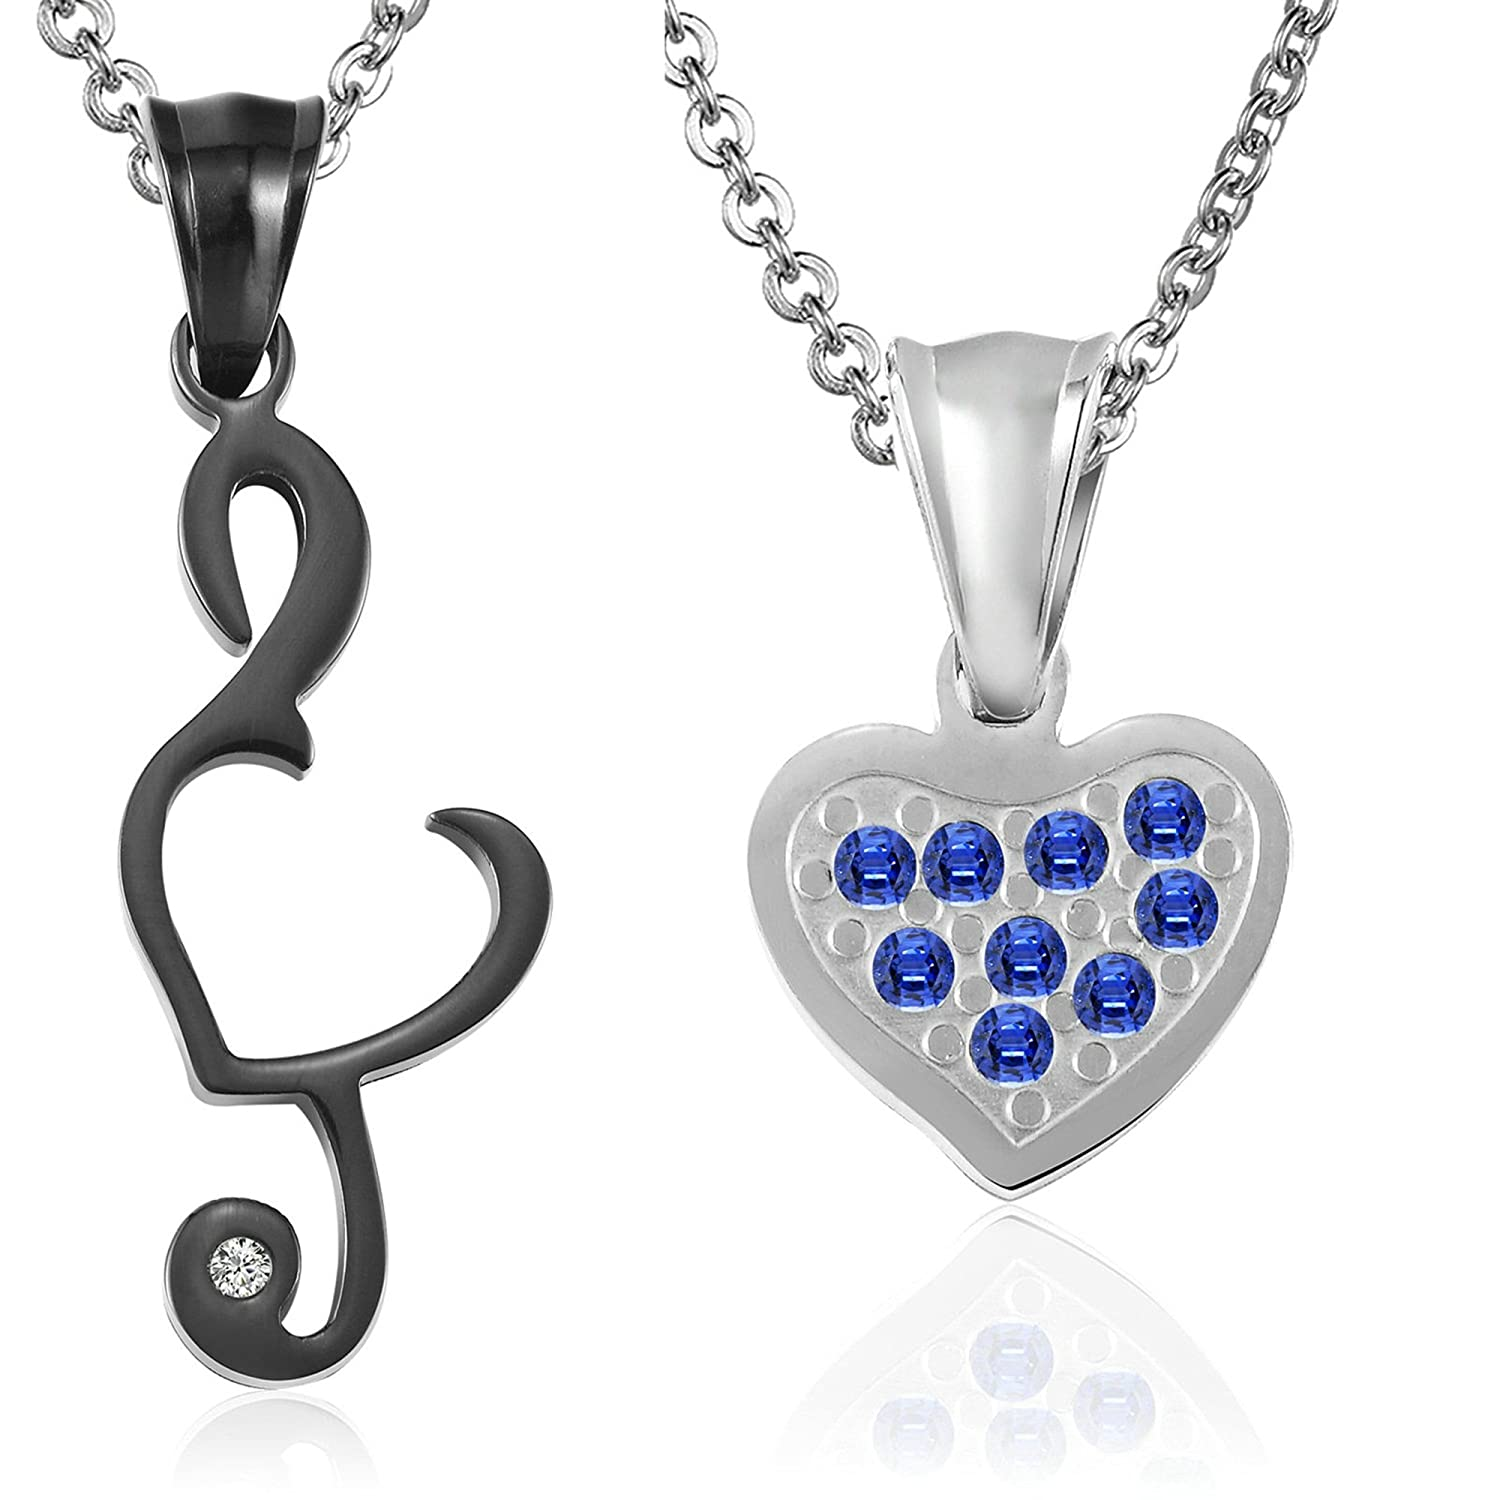 ANAZOZ Fashion Jewelry Stainless Steel Necklace Music Note /& Heart 4 Styles Unisex